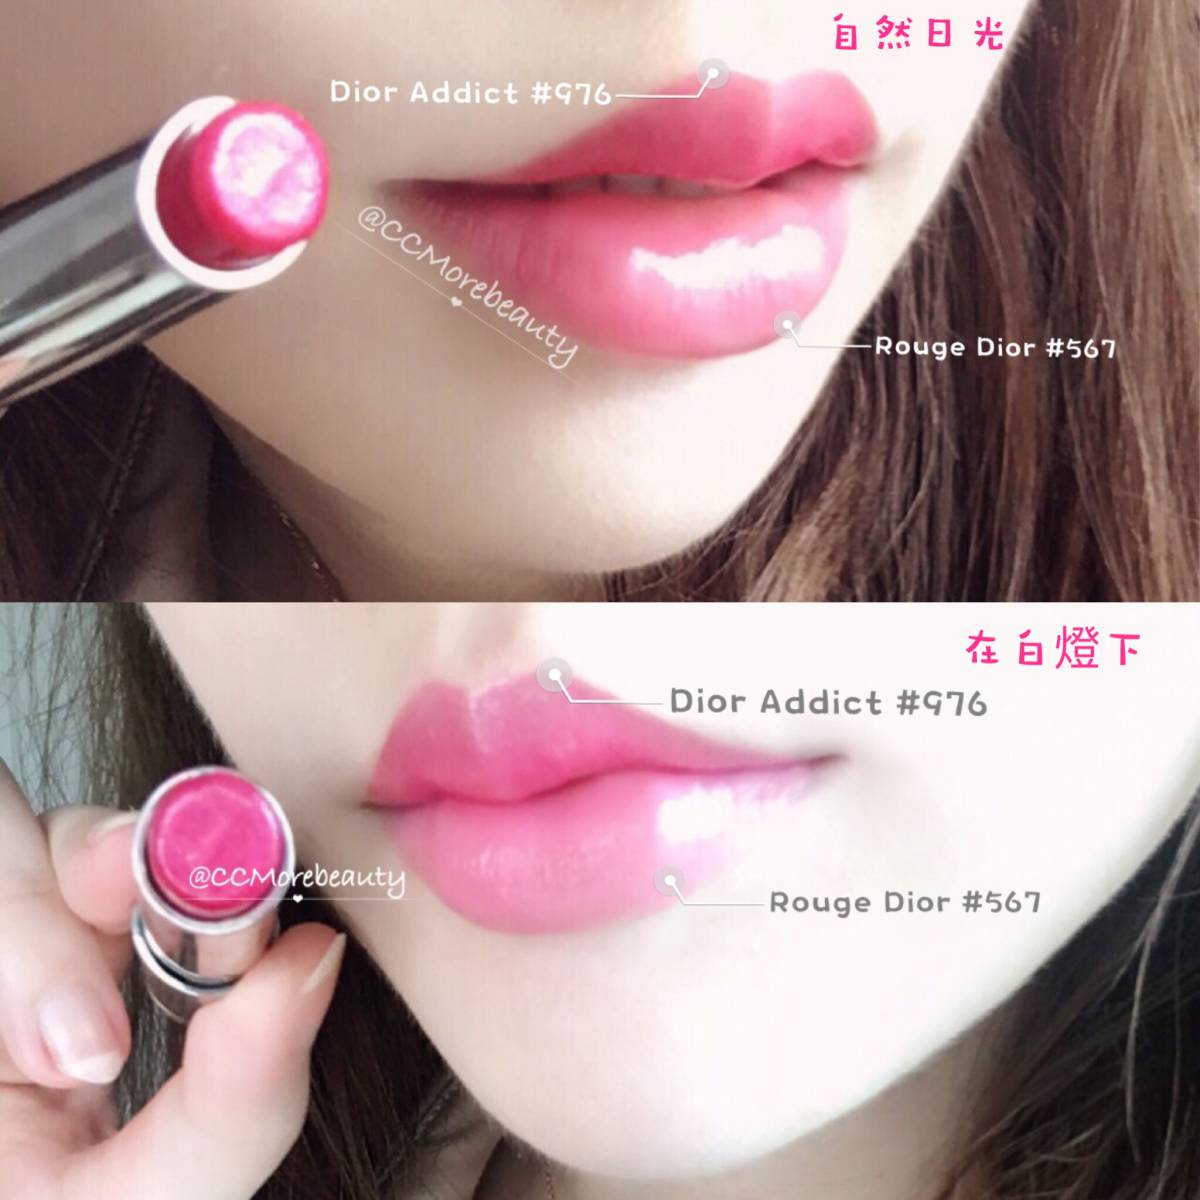 premium selection a93b4 950f0 Dior Addict 超模唇膏#976 VS Rouge Dior 藍星唇膏# | CC護膚小 ...